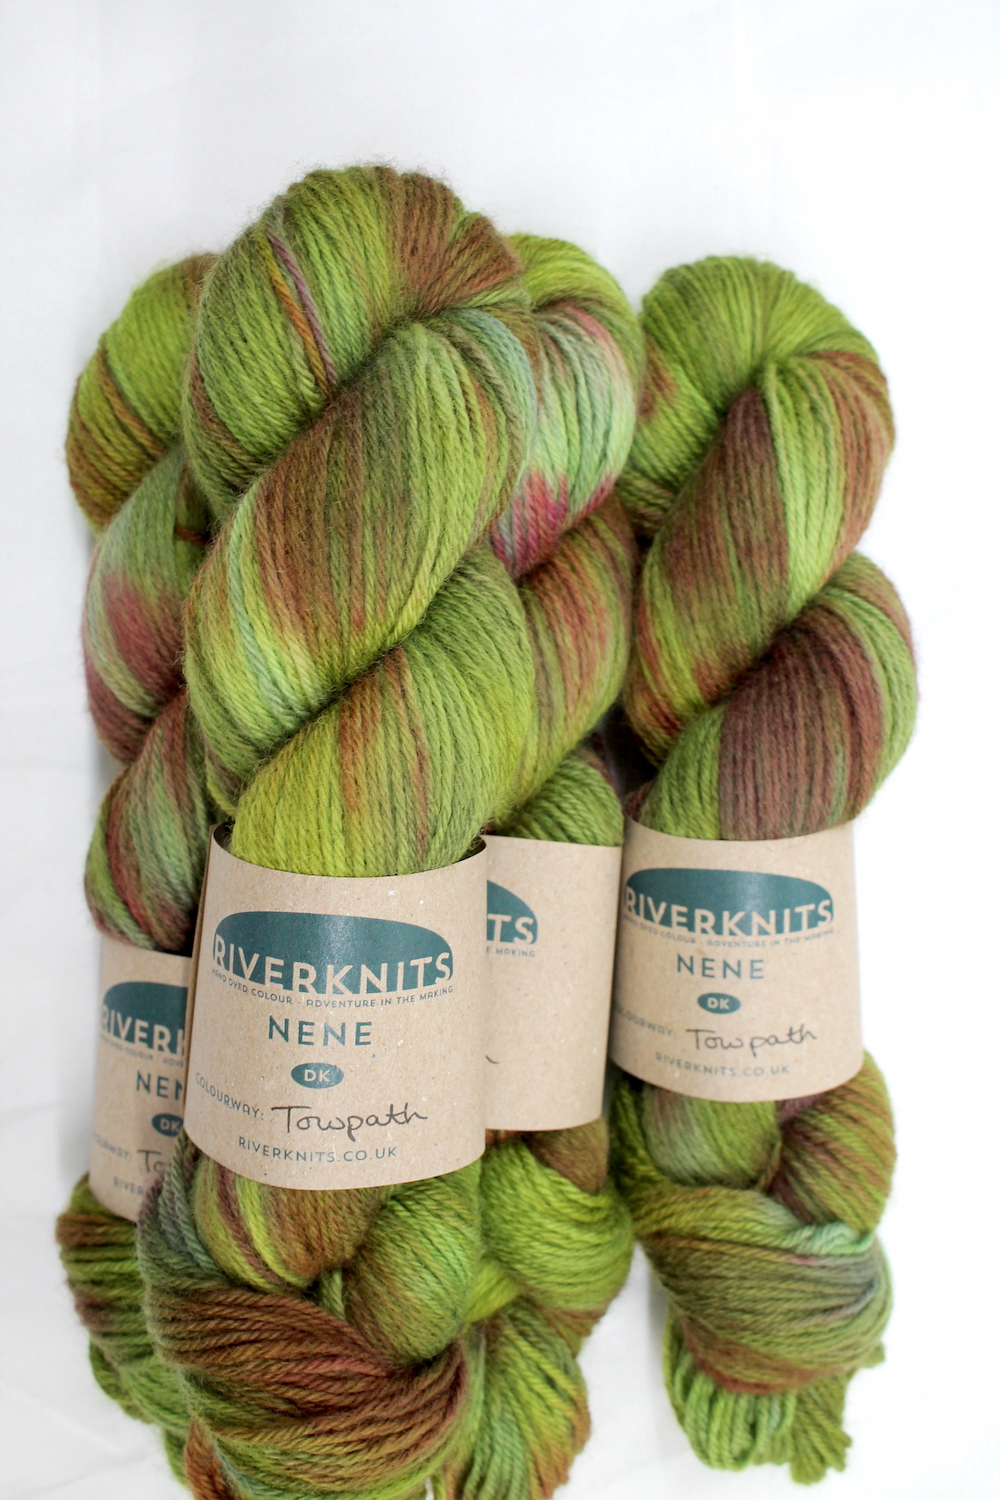 Skeins dyed in variegated greens with hints of copper and red